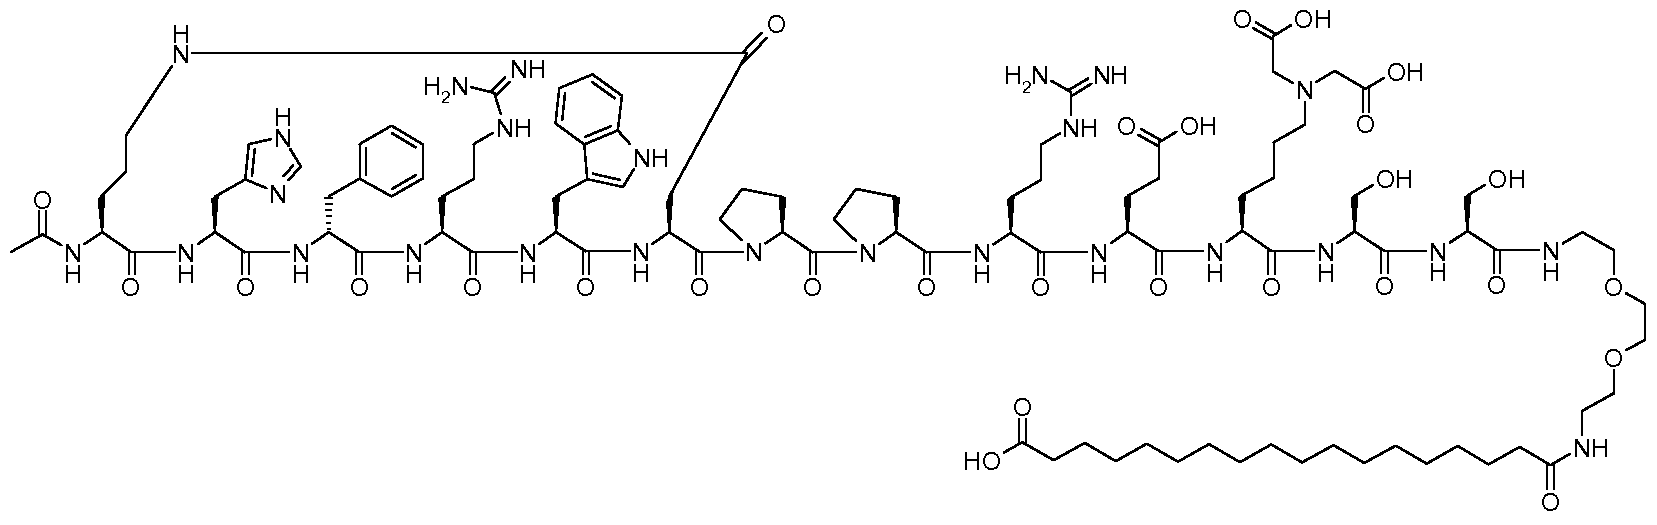 WO2011104378A1 - Peptides for treatment of obesity - Google Patents